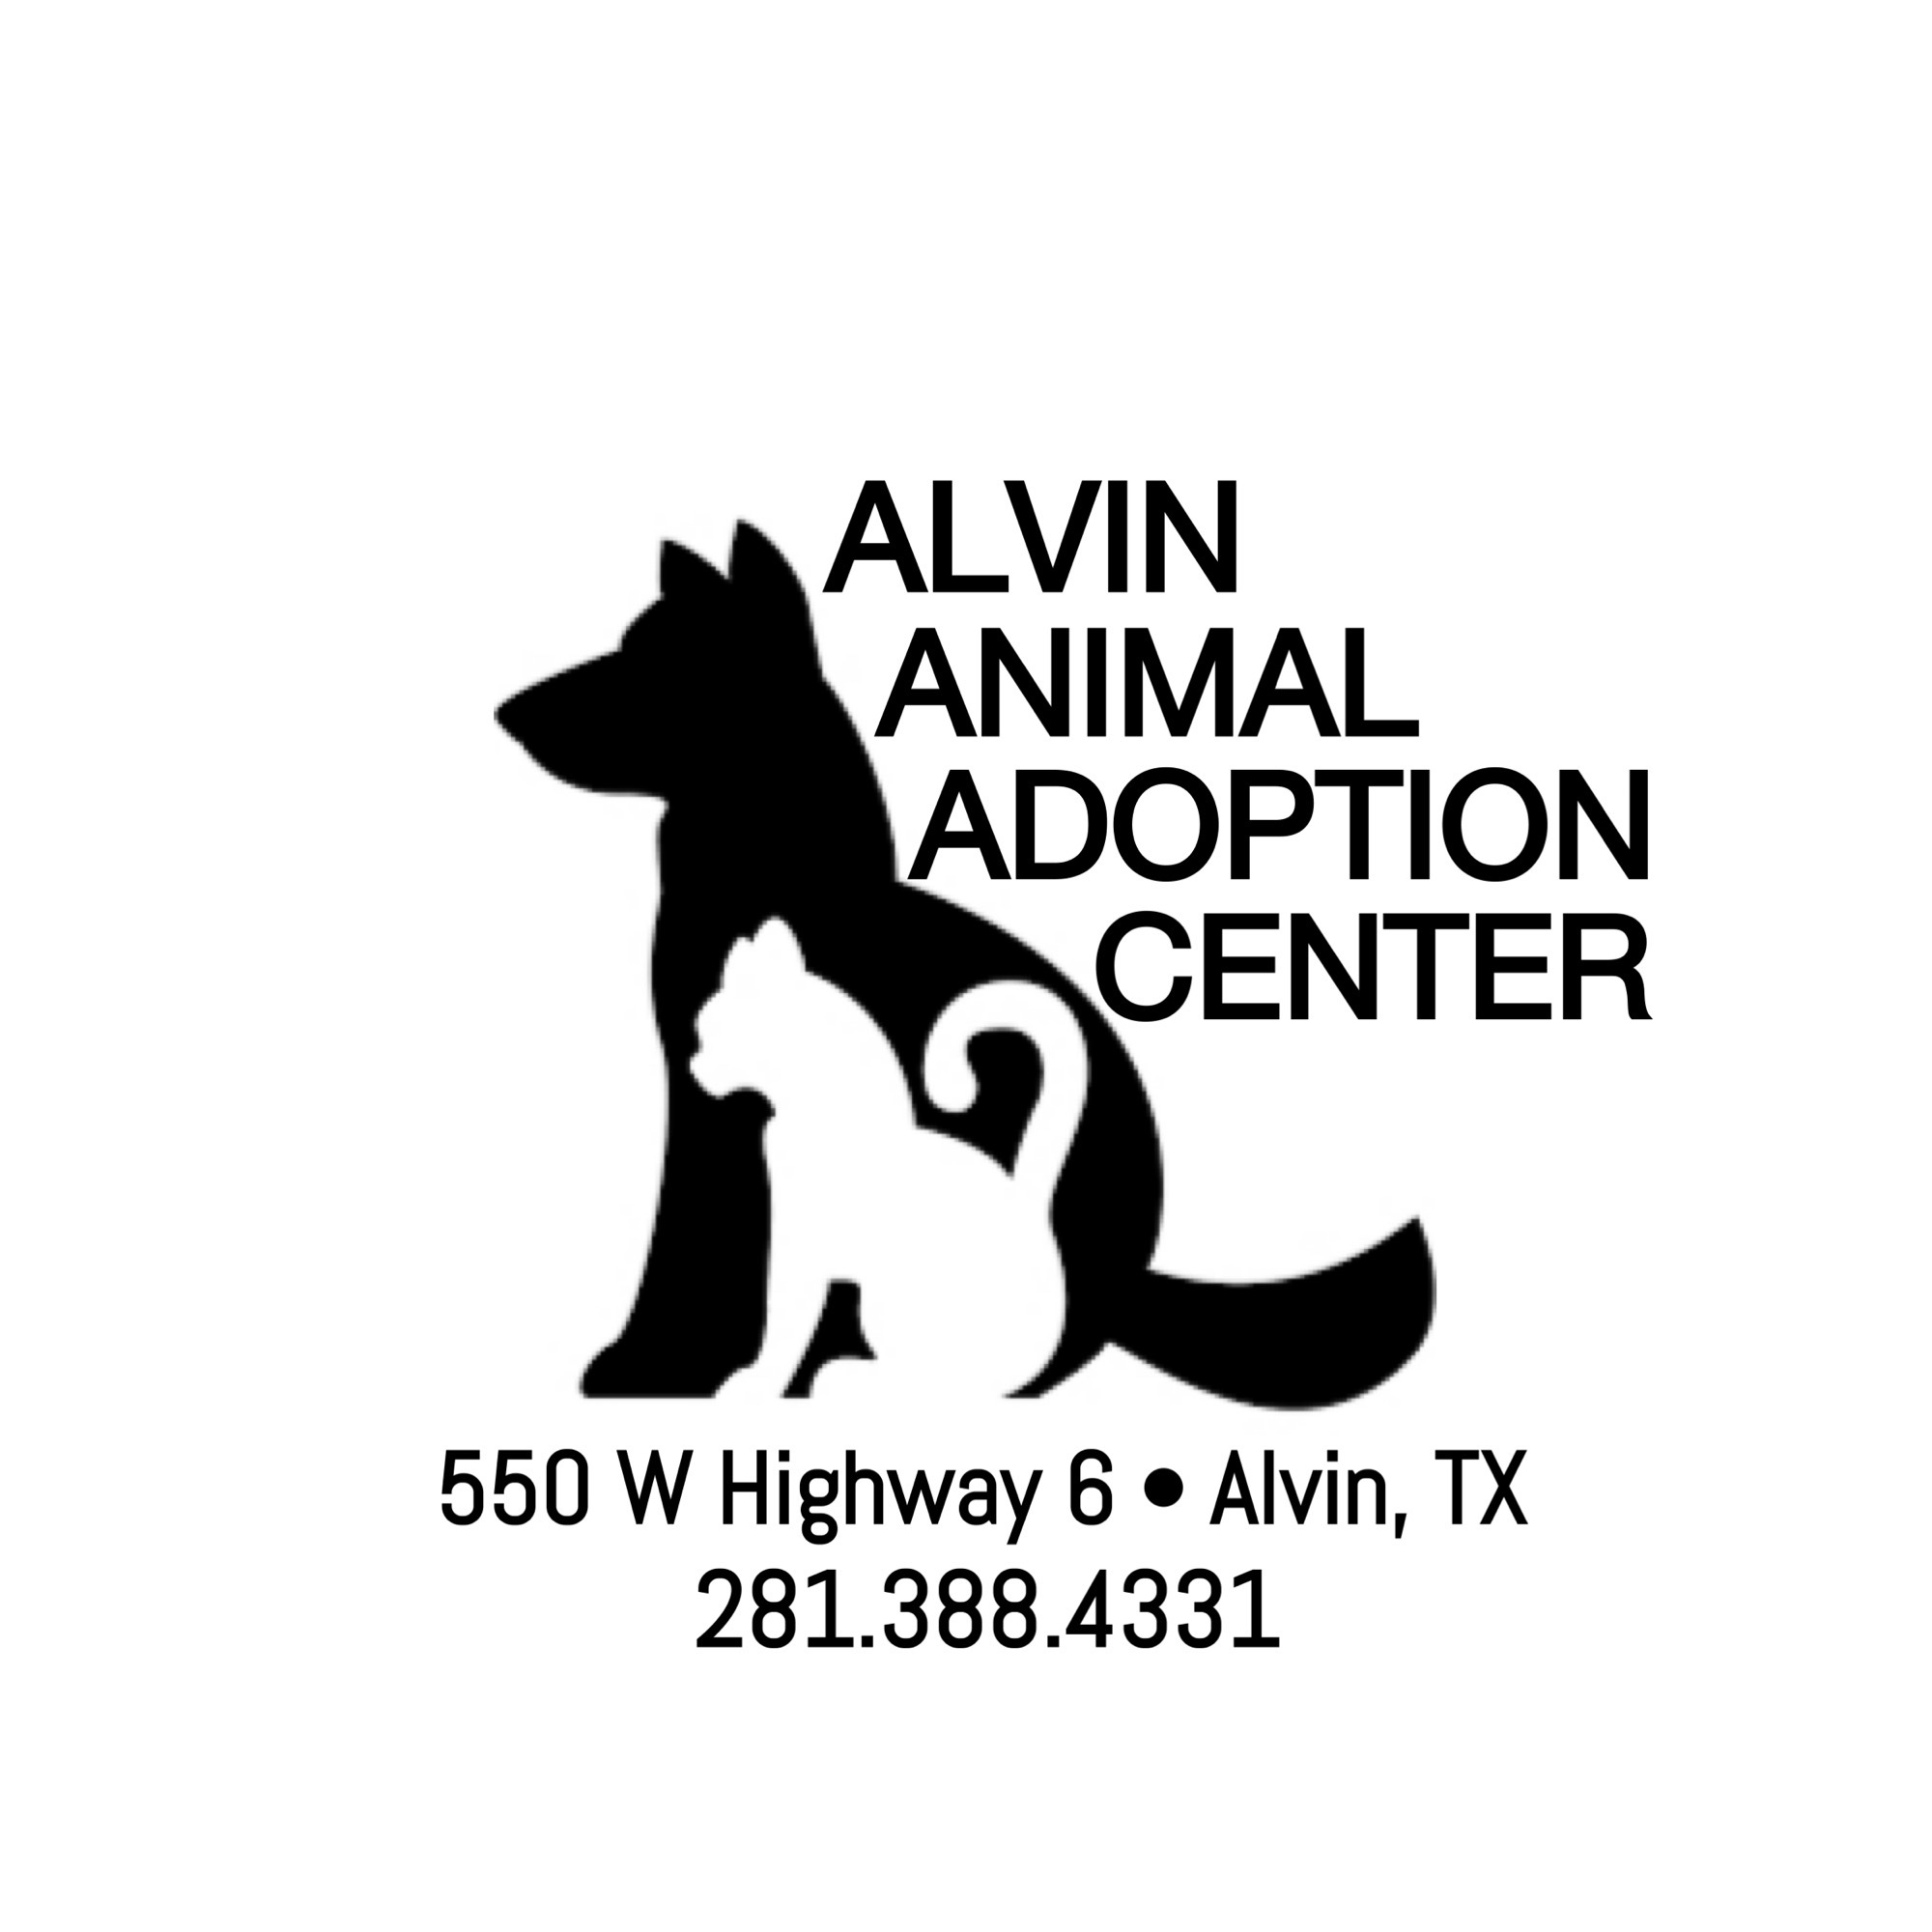 We are located at 550 W HWY 6 in Alvin, TX!